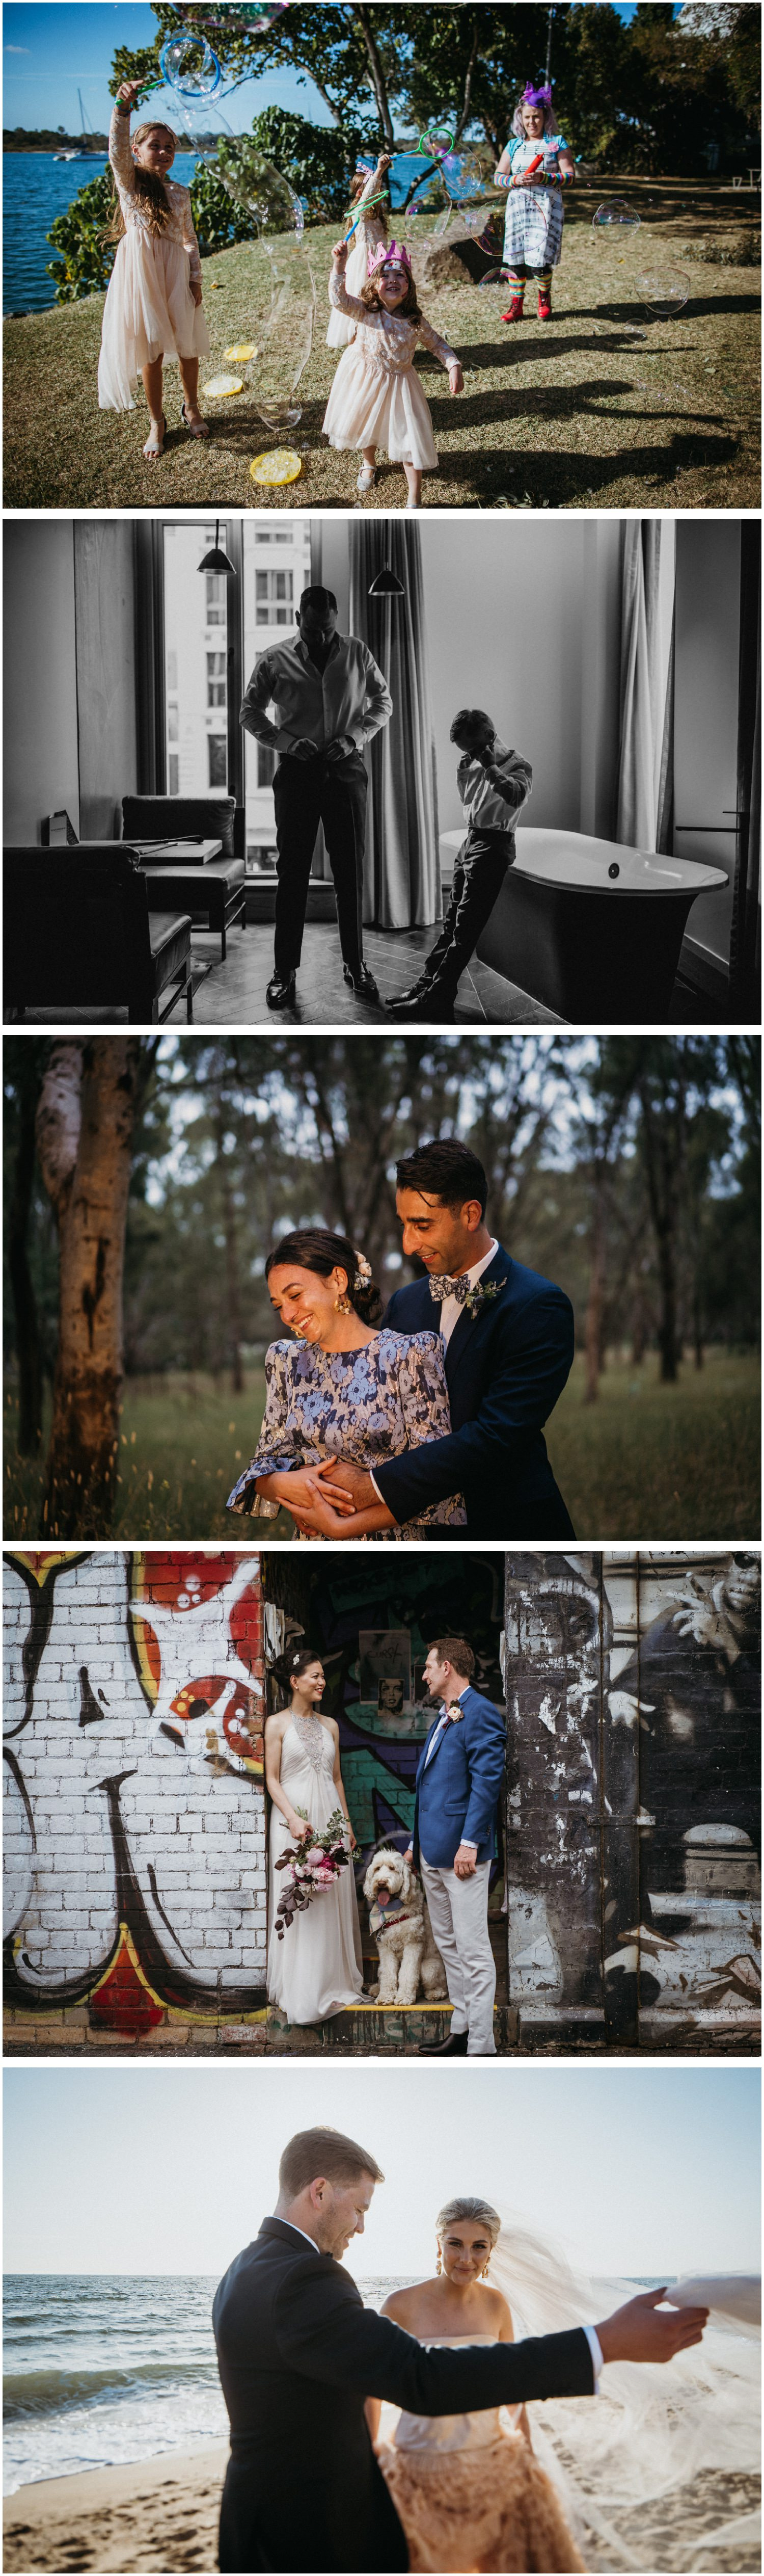 Melbourne Wedding Photographer - 2018 in review -766A7023.jpg